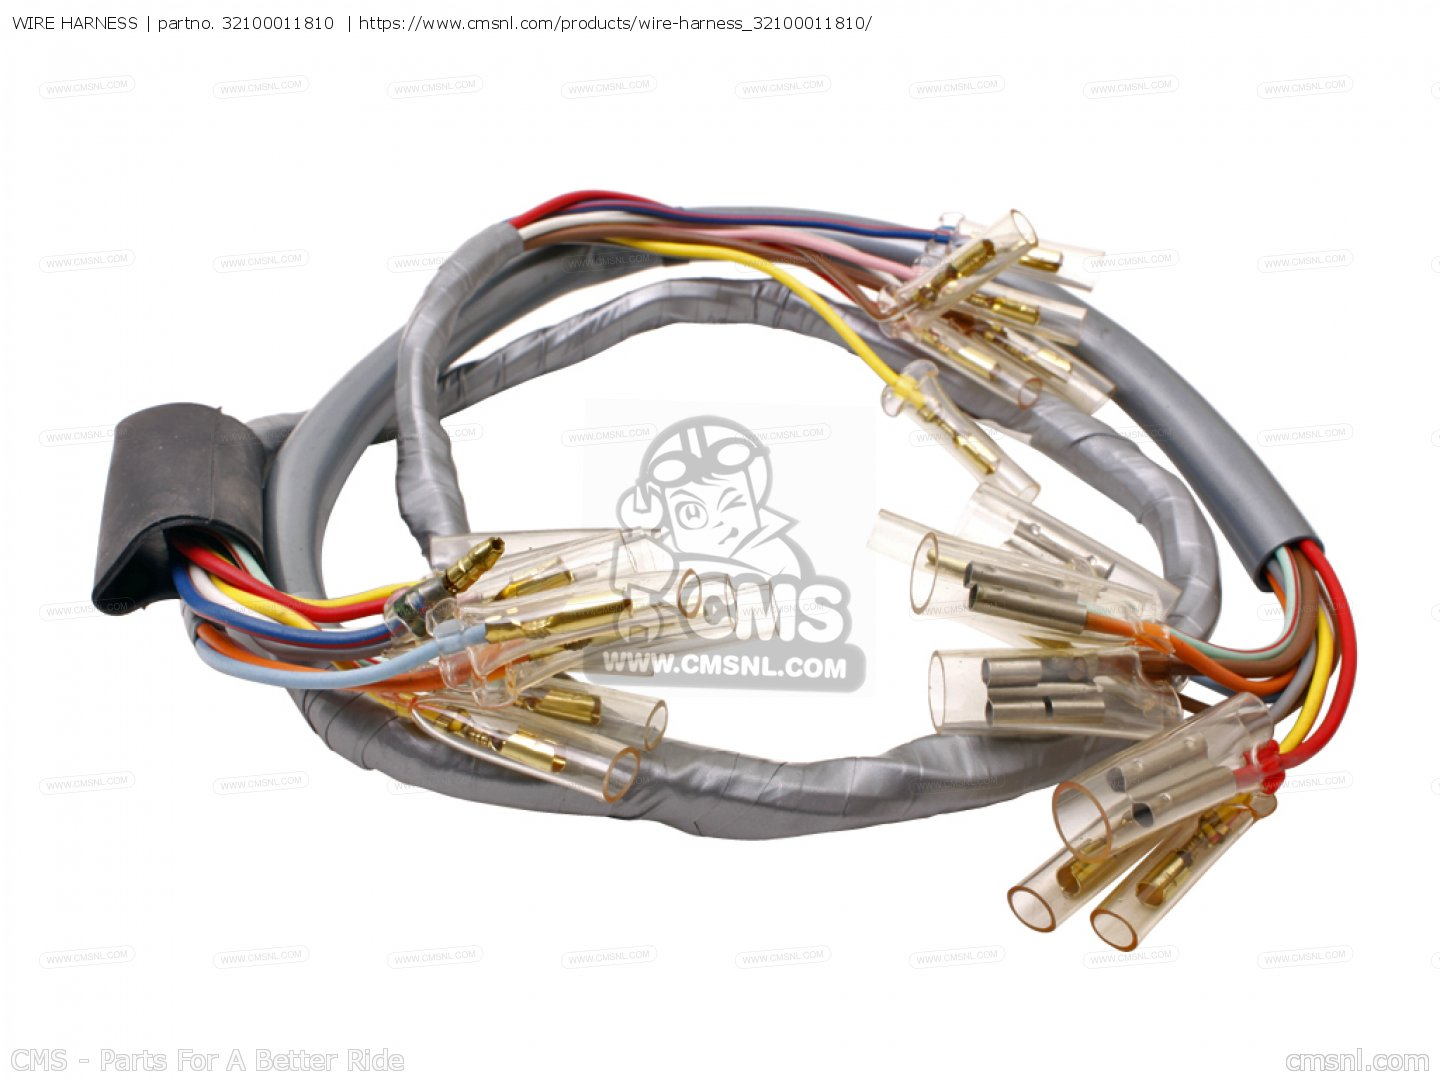 WIRE HARNESS for C110 GENERAL EXPORT (140115) - order at CMSNLCmsnl.com